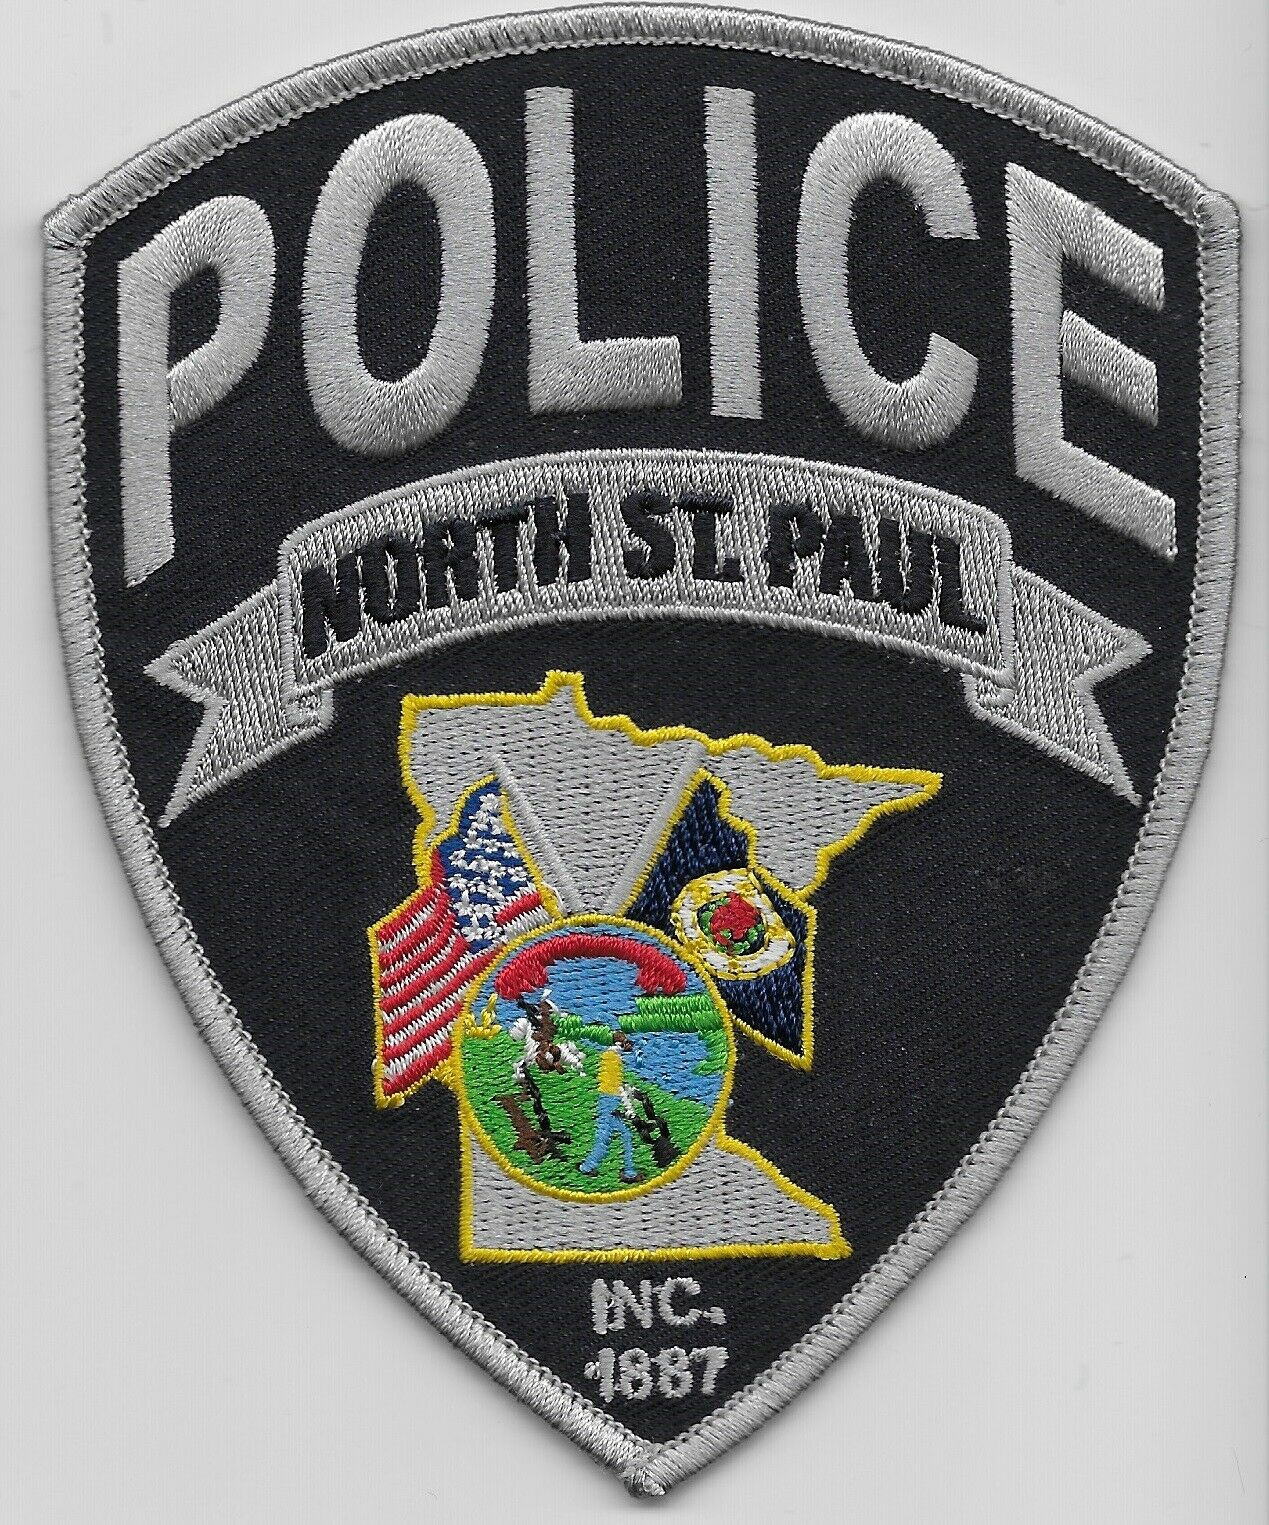 No St Paul Police MN